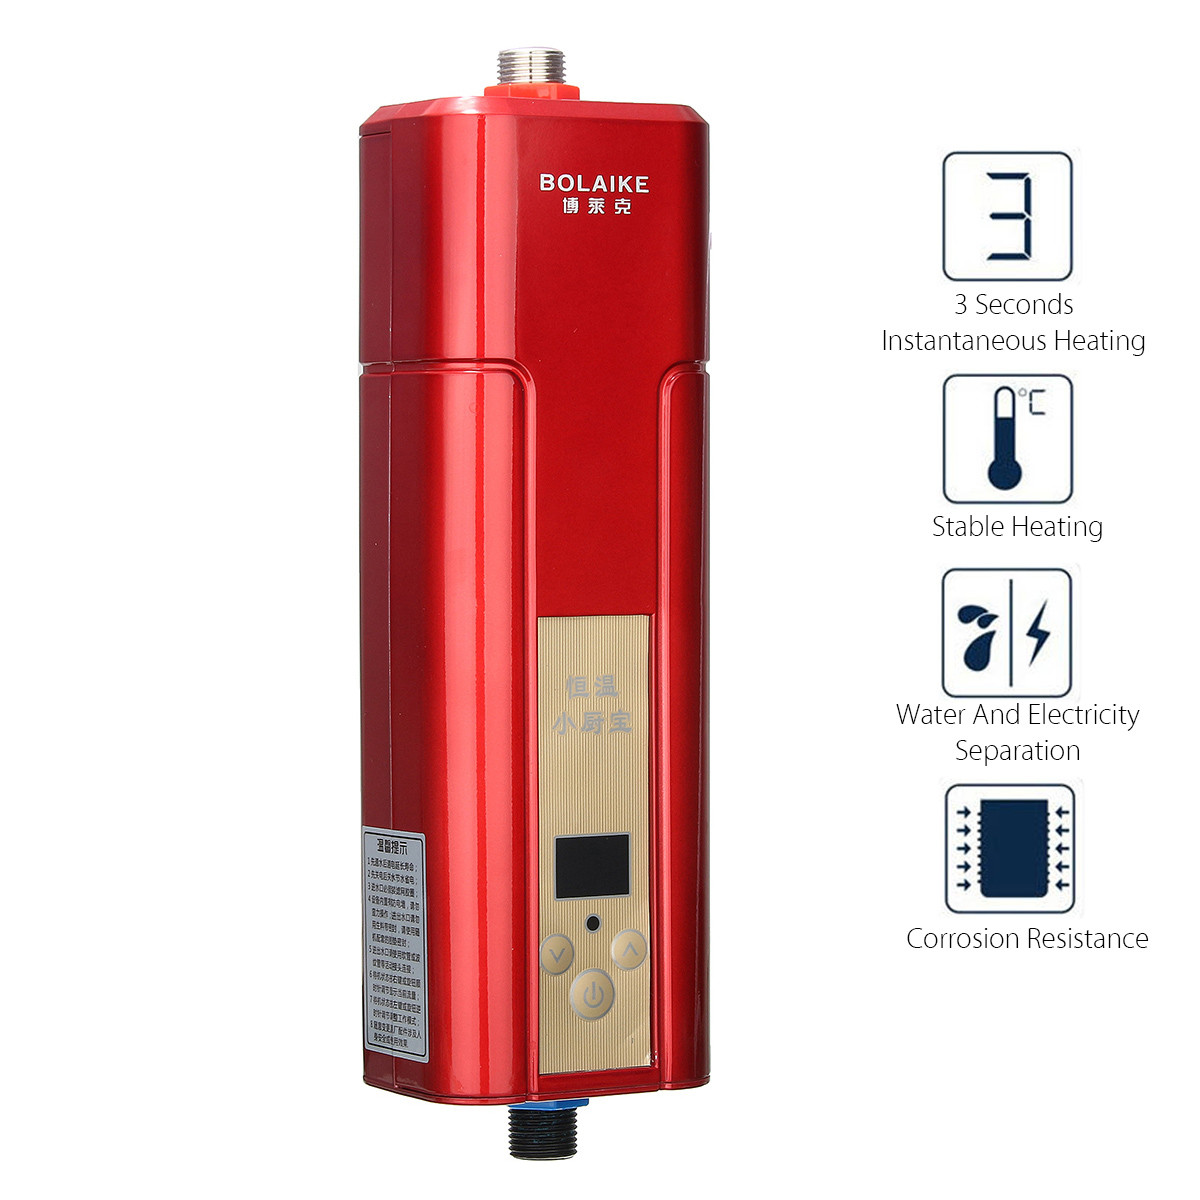 220V 5500W Electric Water Heater Mini Instant Tankless Water Heater Indoor Shower Kitchen Bathroom Water Heater Appliances